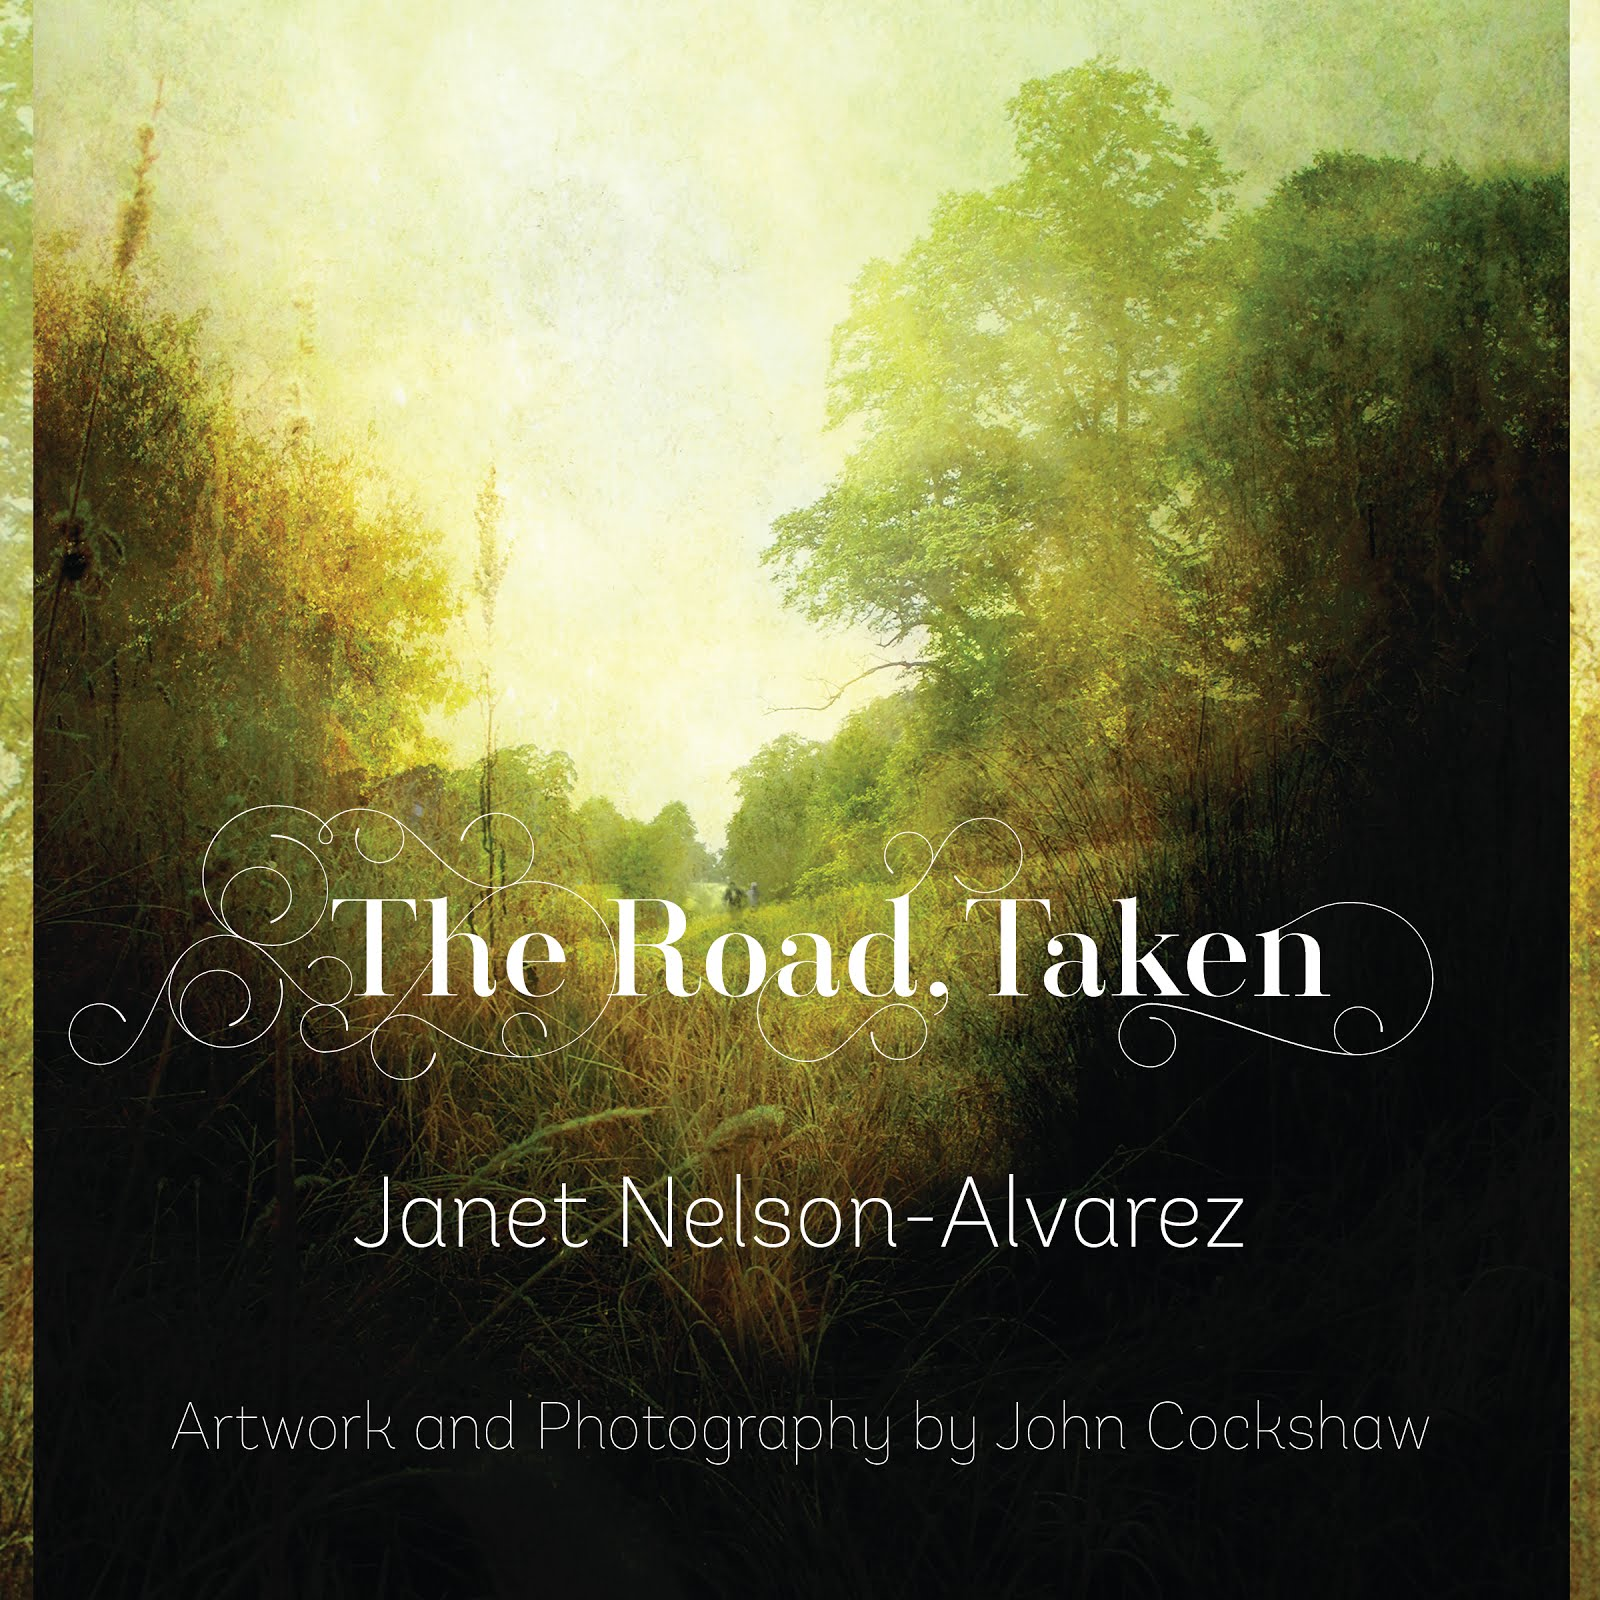 THE ROAD, TAKEN: Poetry by Janet Nelson-Alvarez - Art and readings by John Cockshaw